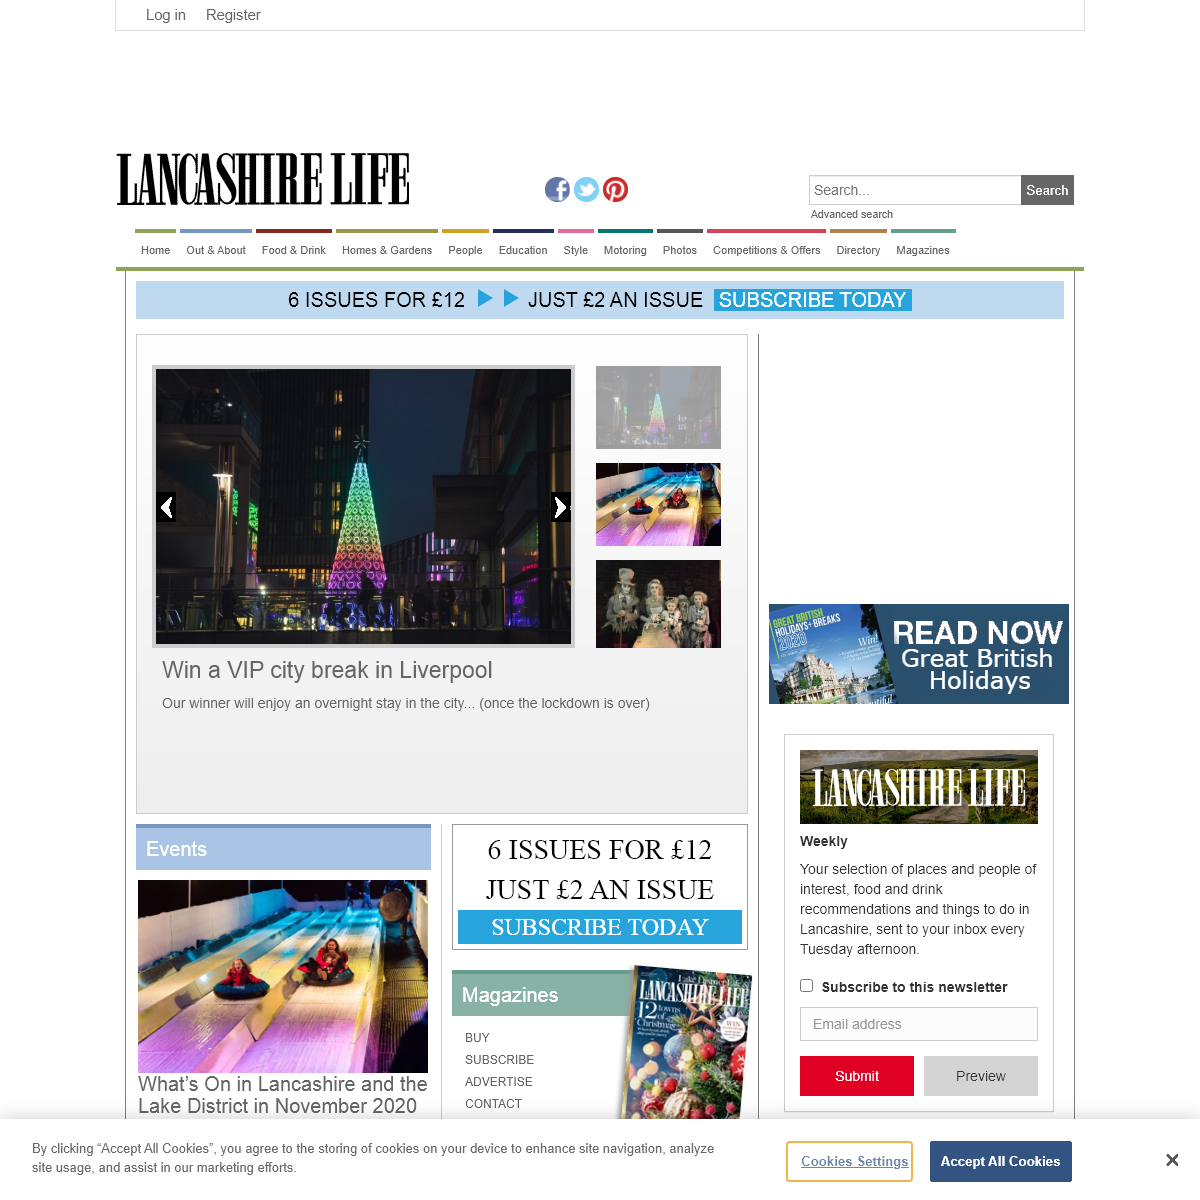 Things to do in Lancashire, events & lifestyle - Lancashire Life